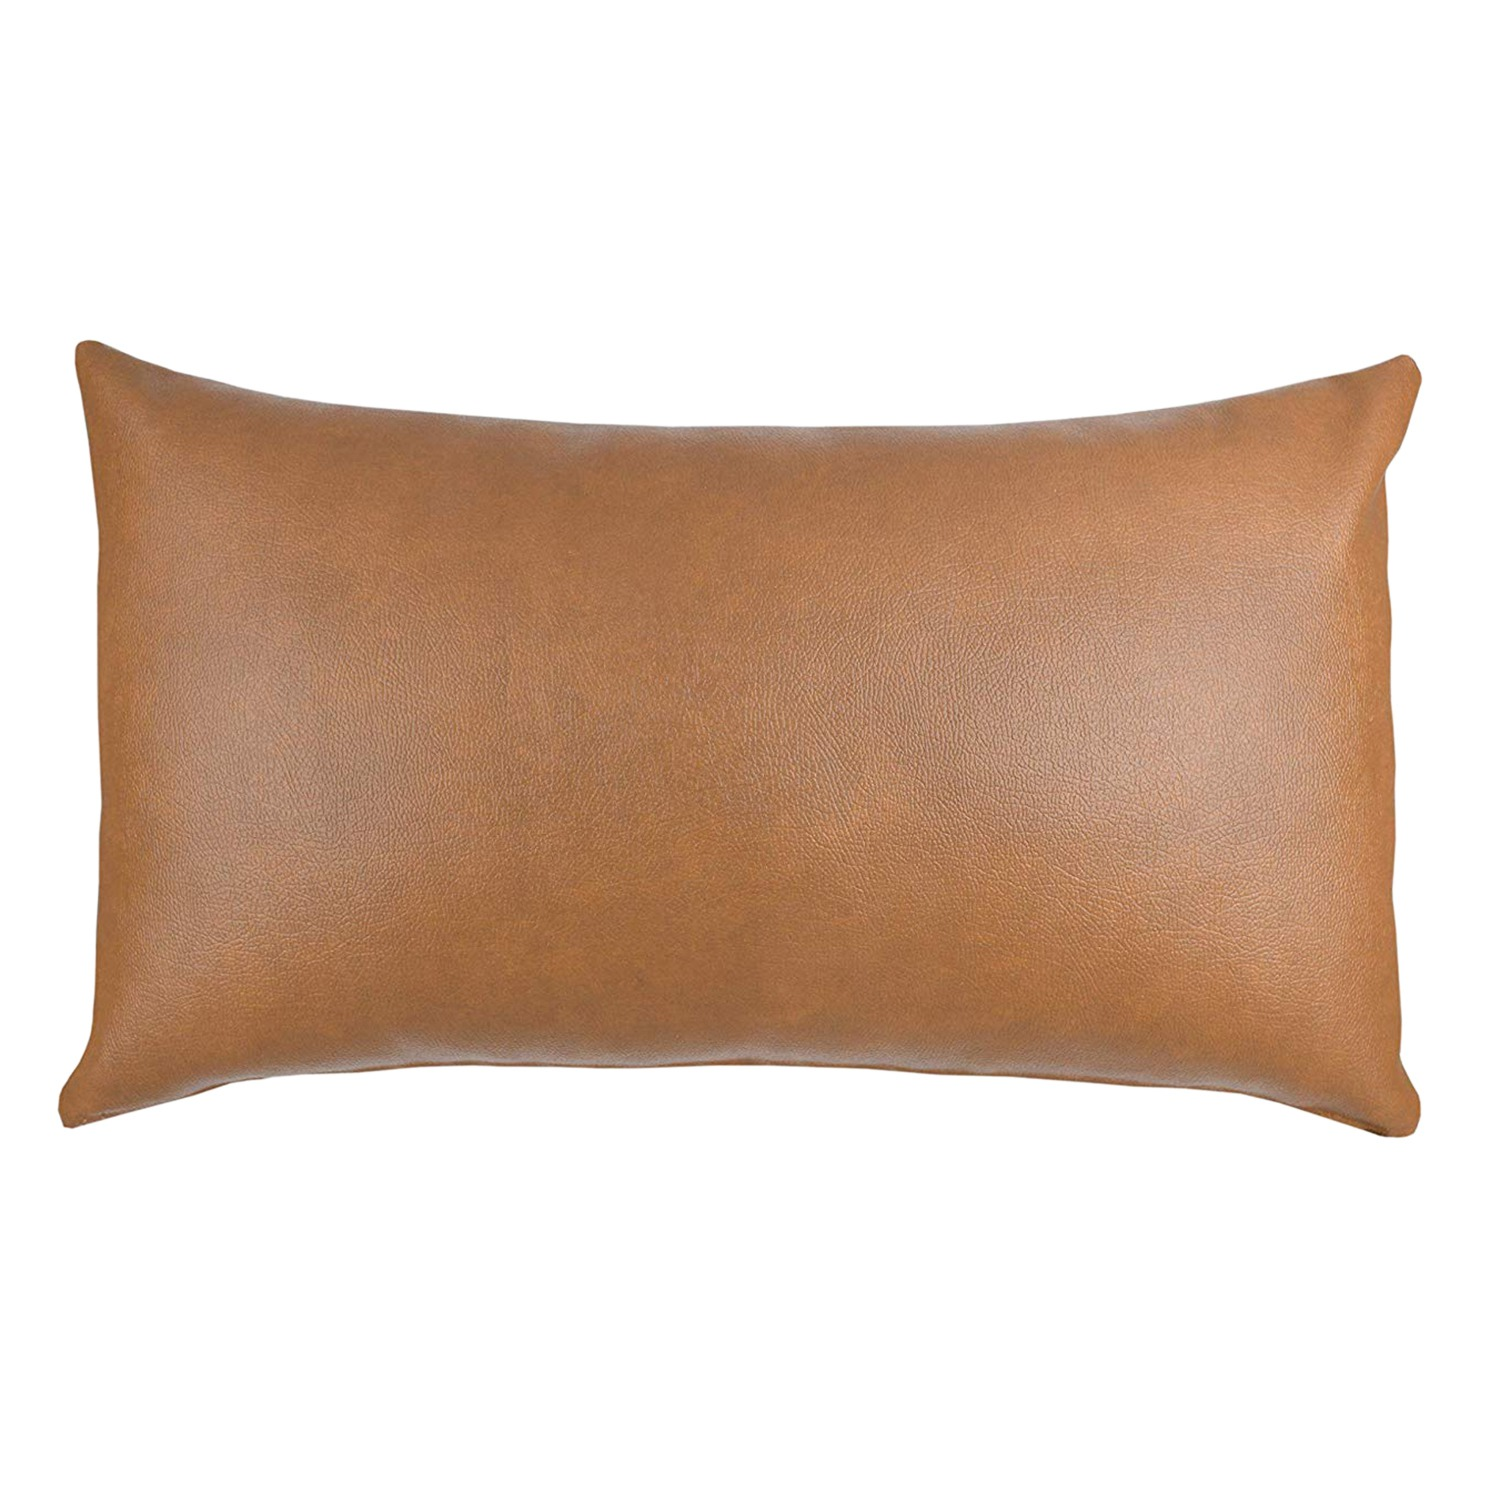 Decorative Lumbar Throw Pillow Cover Only For Couch,Or Bed Modern Quality Design 100% Faux Leather Milo Lumbar(12 Inchx20